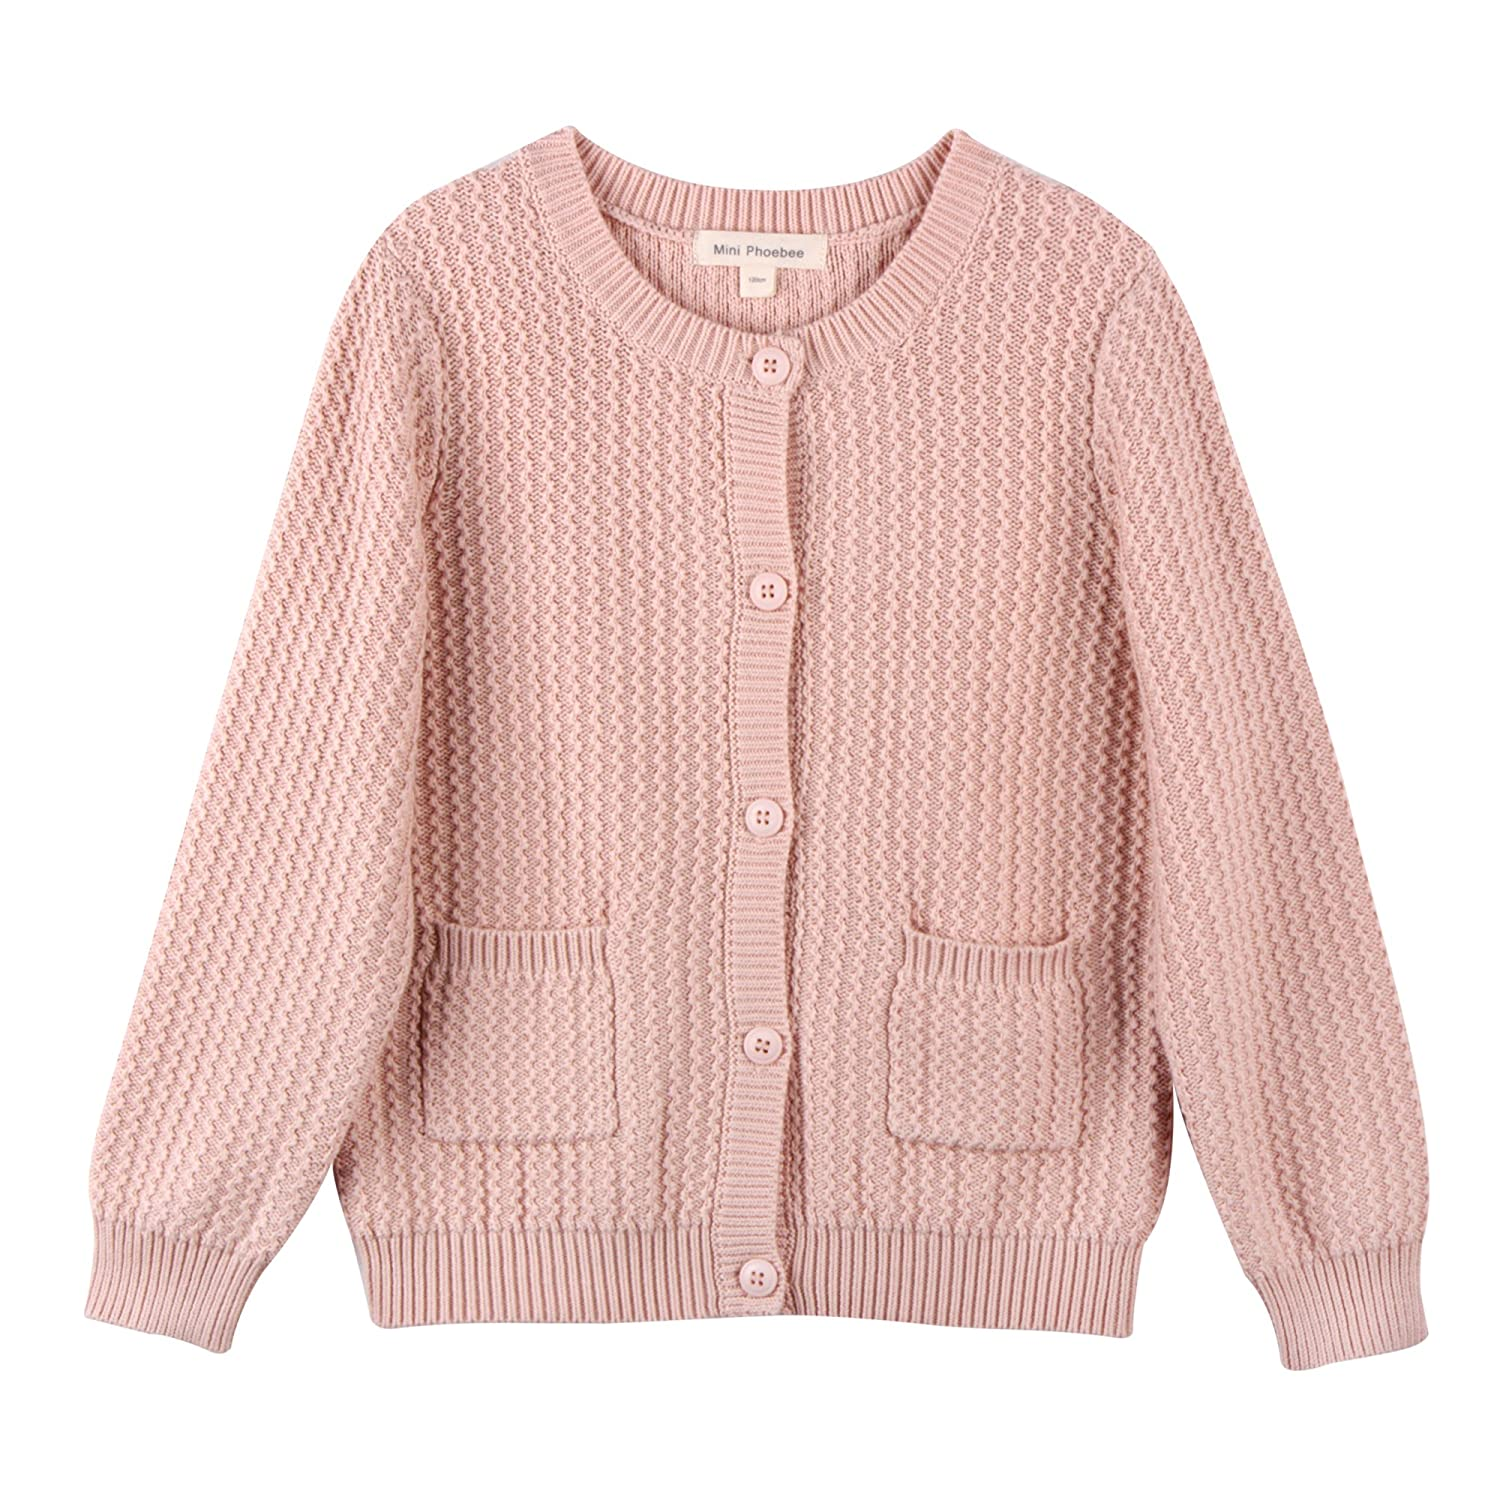 Mini Phoebee Girls' Long Sleeve Crew Neck Twisted Texture Knit Cardigan Sweater